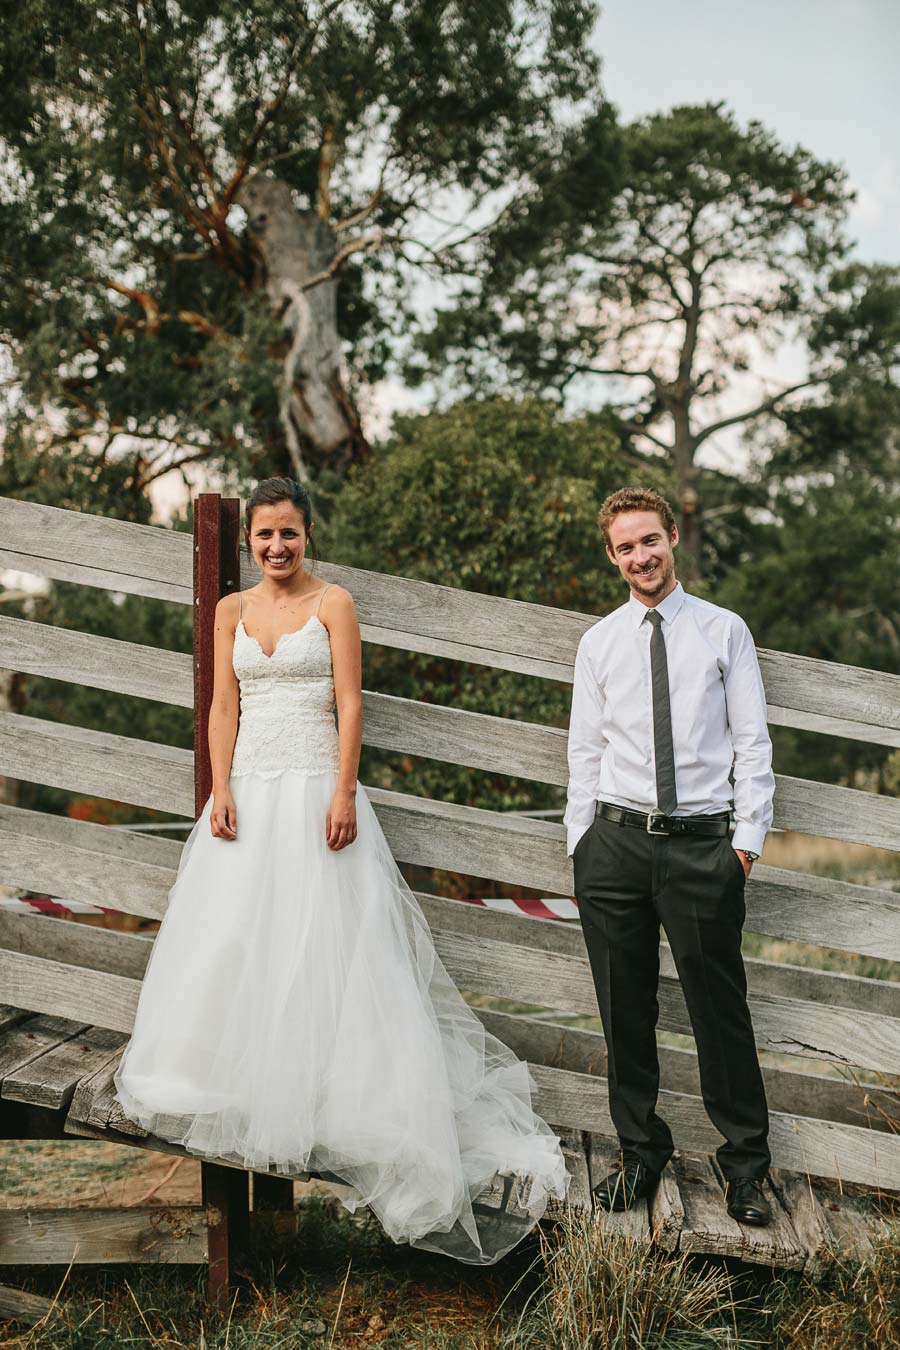 Melbourne farm wedding bride and groom on shed